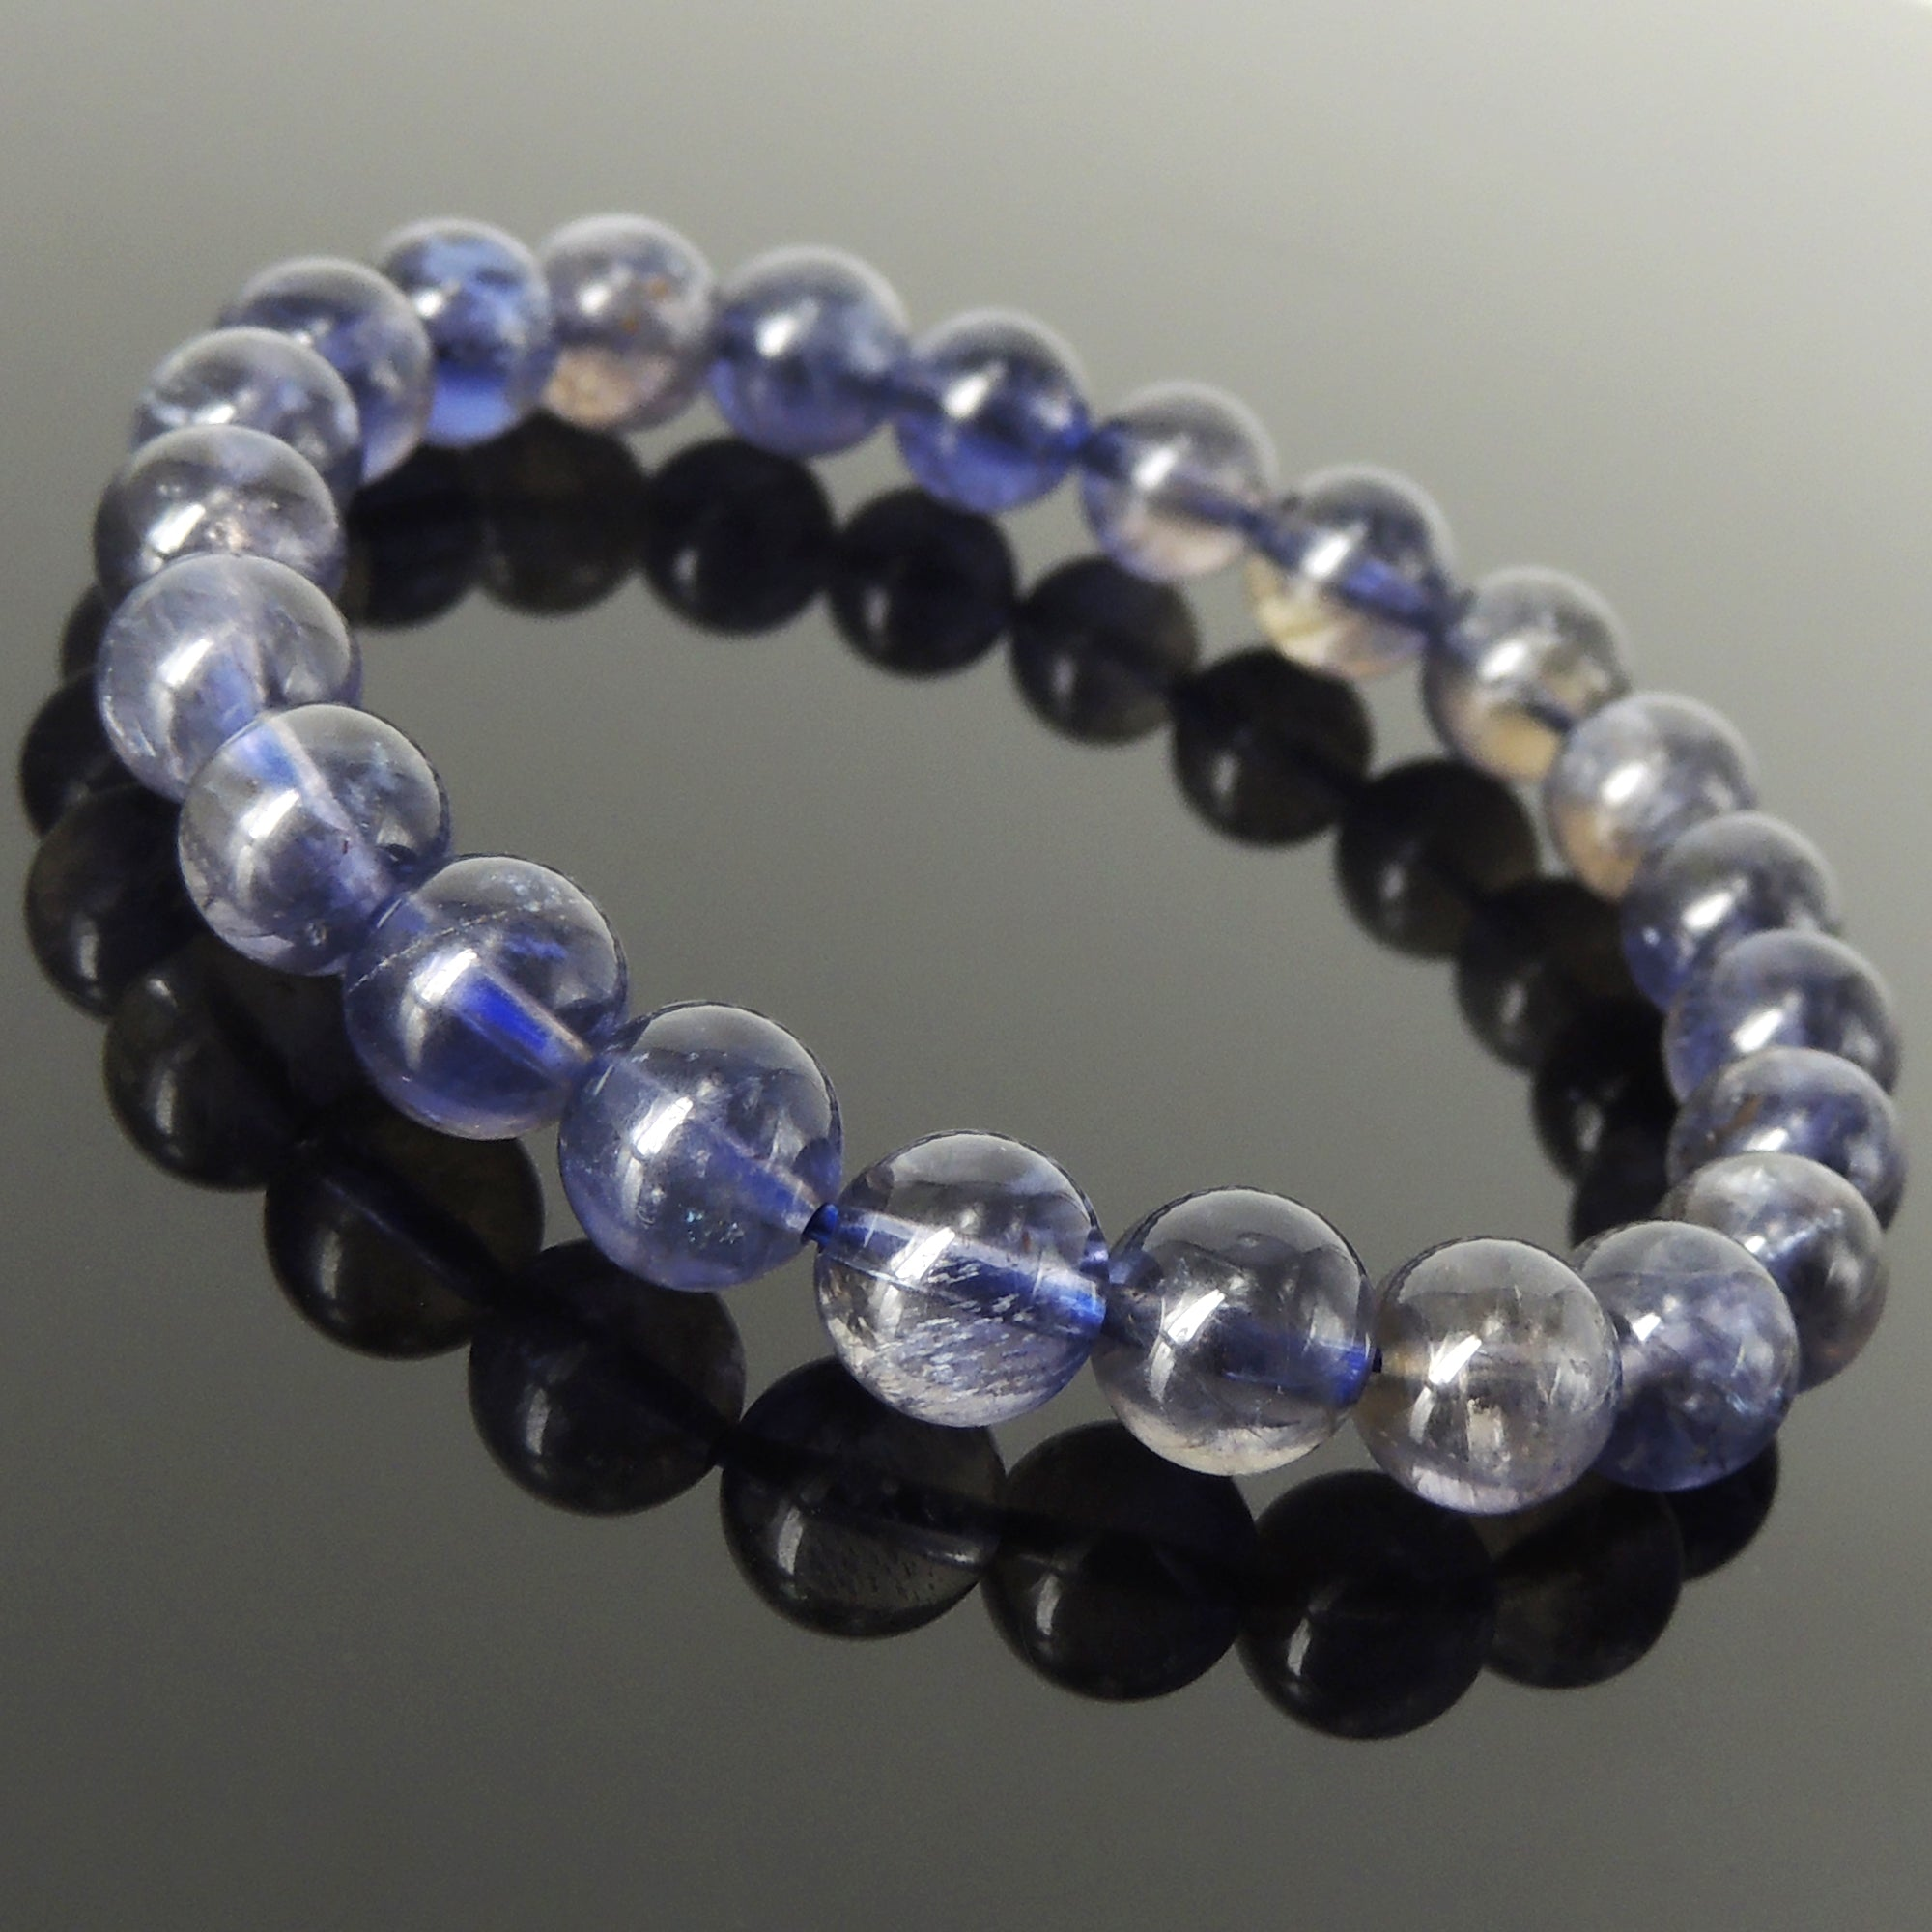 Iolite bracelet for feet Purple raw crystal anklet Water sapphire ankle bracelet Natural stone jewelry Crown chakra healing energy